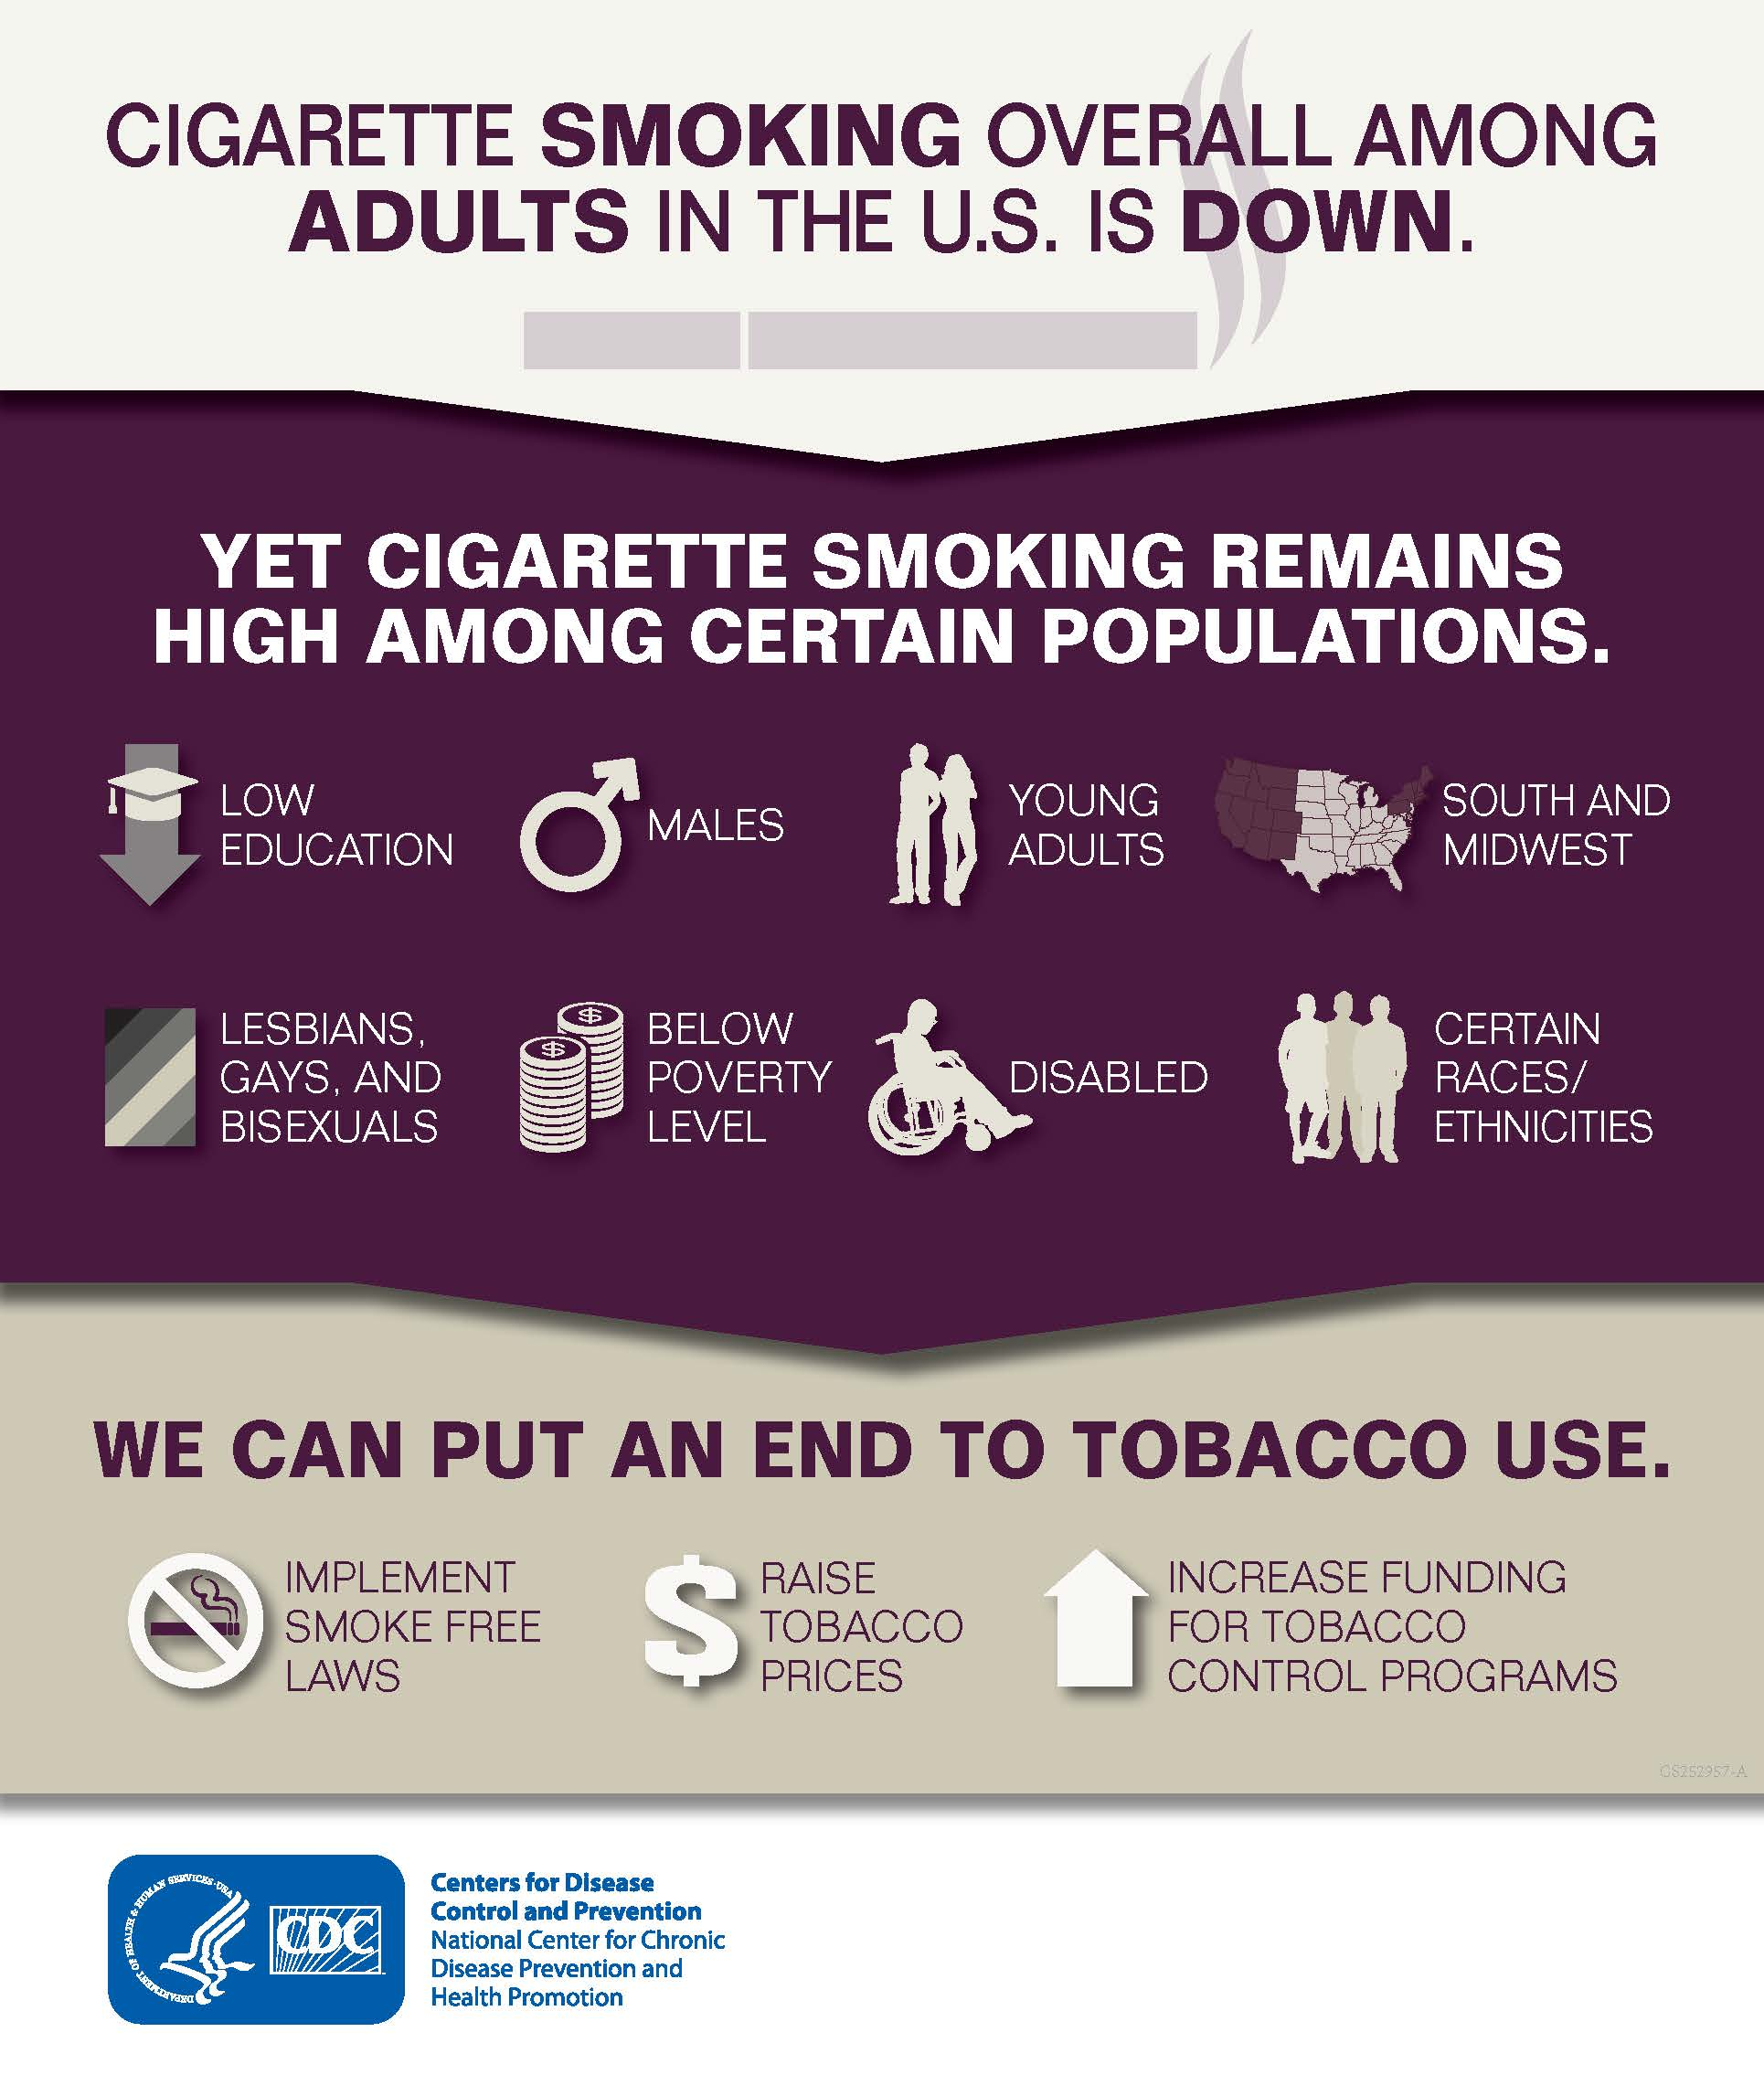 CIGARETTE SMOKING OVERALL AMONG ADULTS IN THE U.S. IS DOWN.  YET CIGARETTE SMOKING REMAINS HIGH AMONG CERTAIN POPULATIONS.